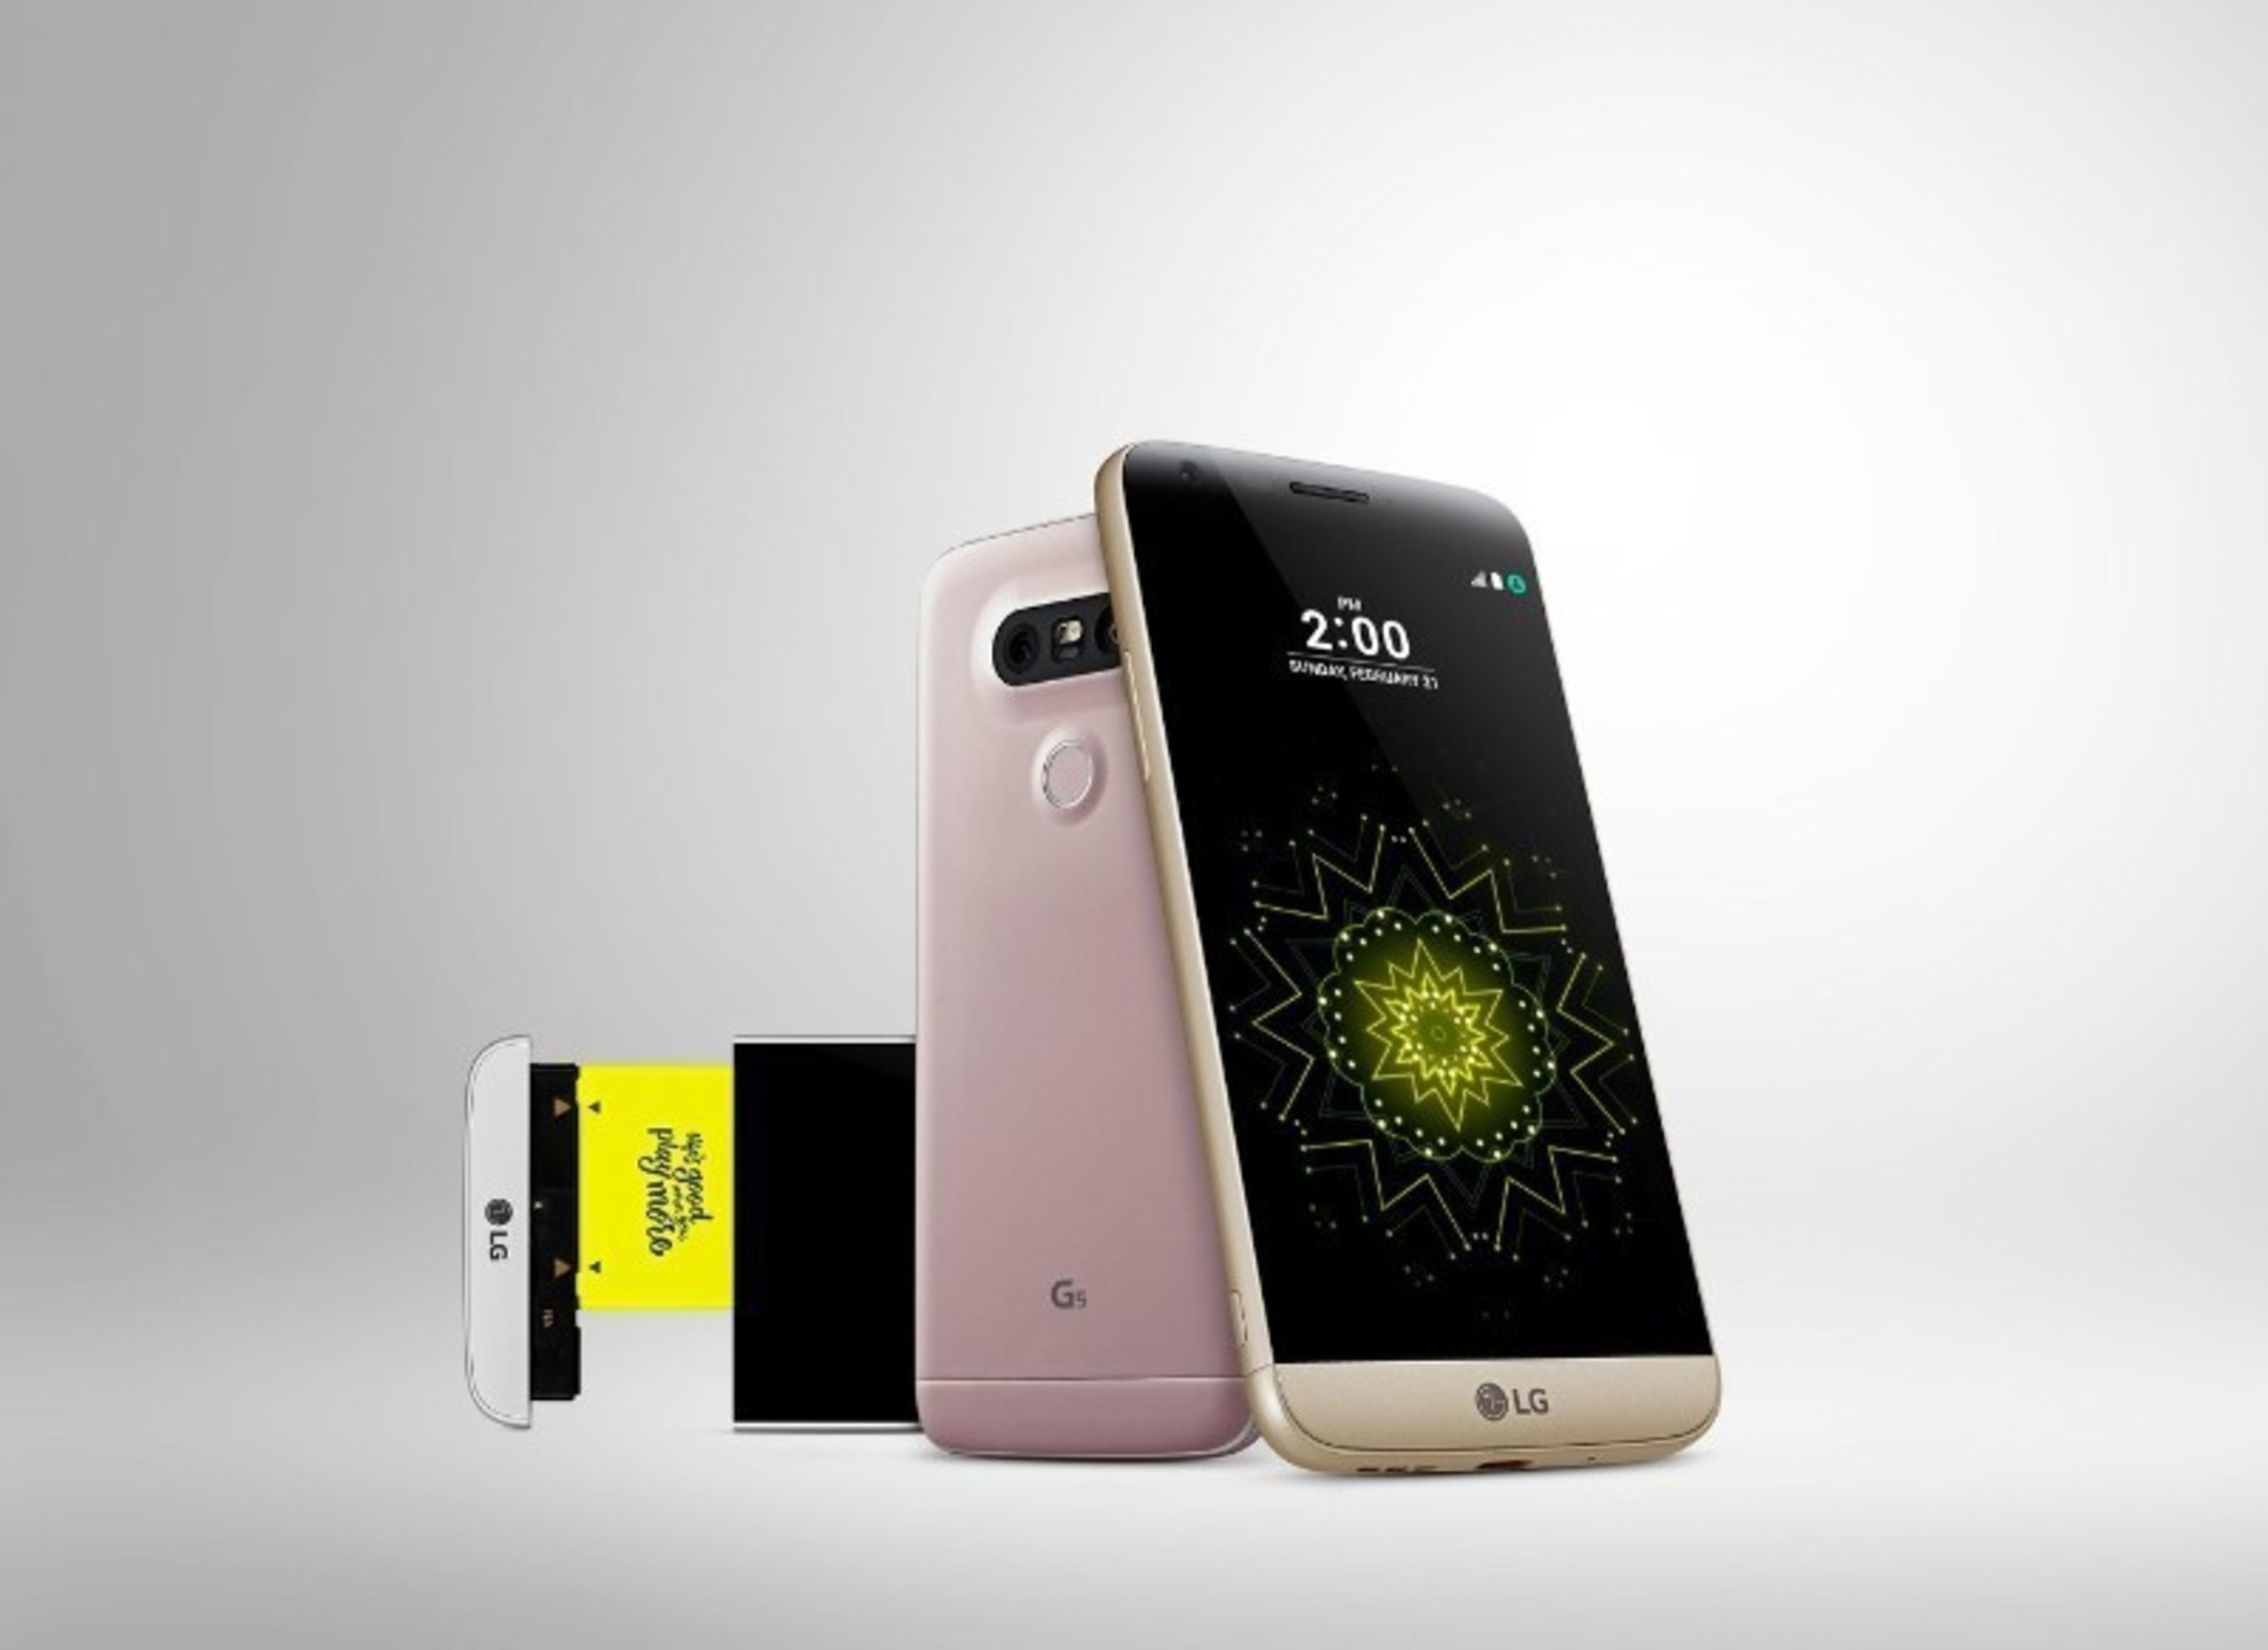 LG G5 Smartphone and 'LG Friends' Devices on Sale in U.S. Early April